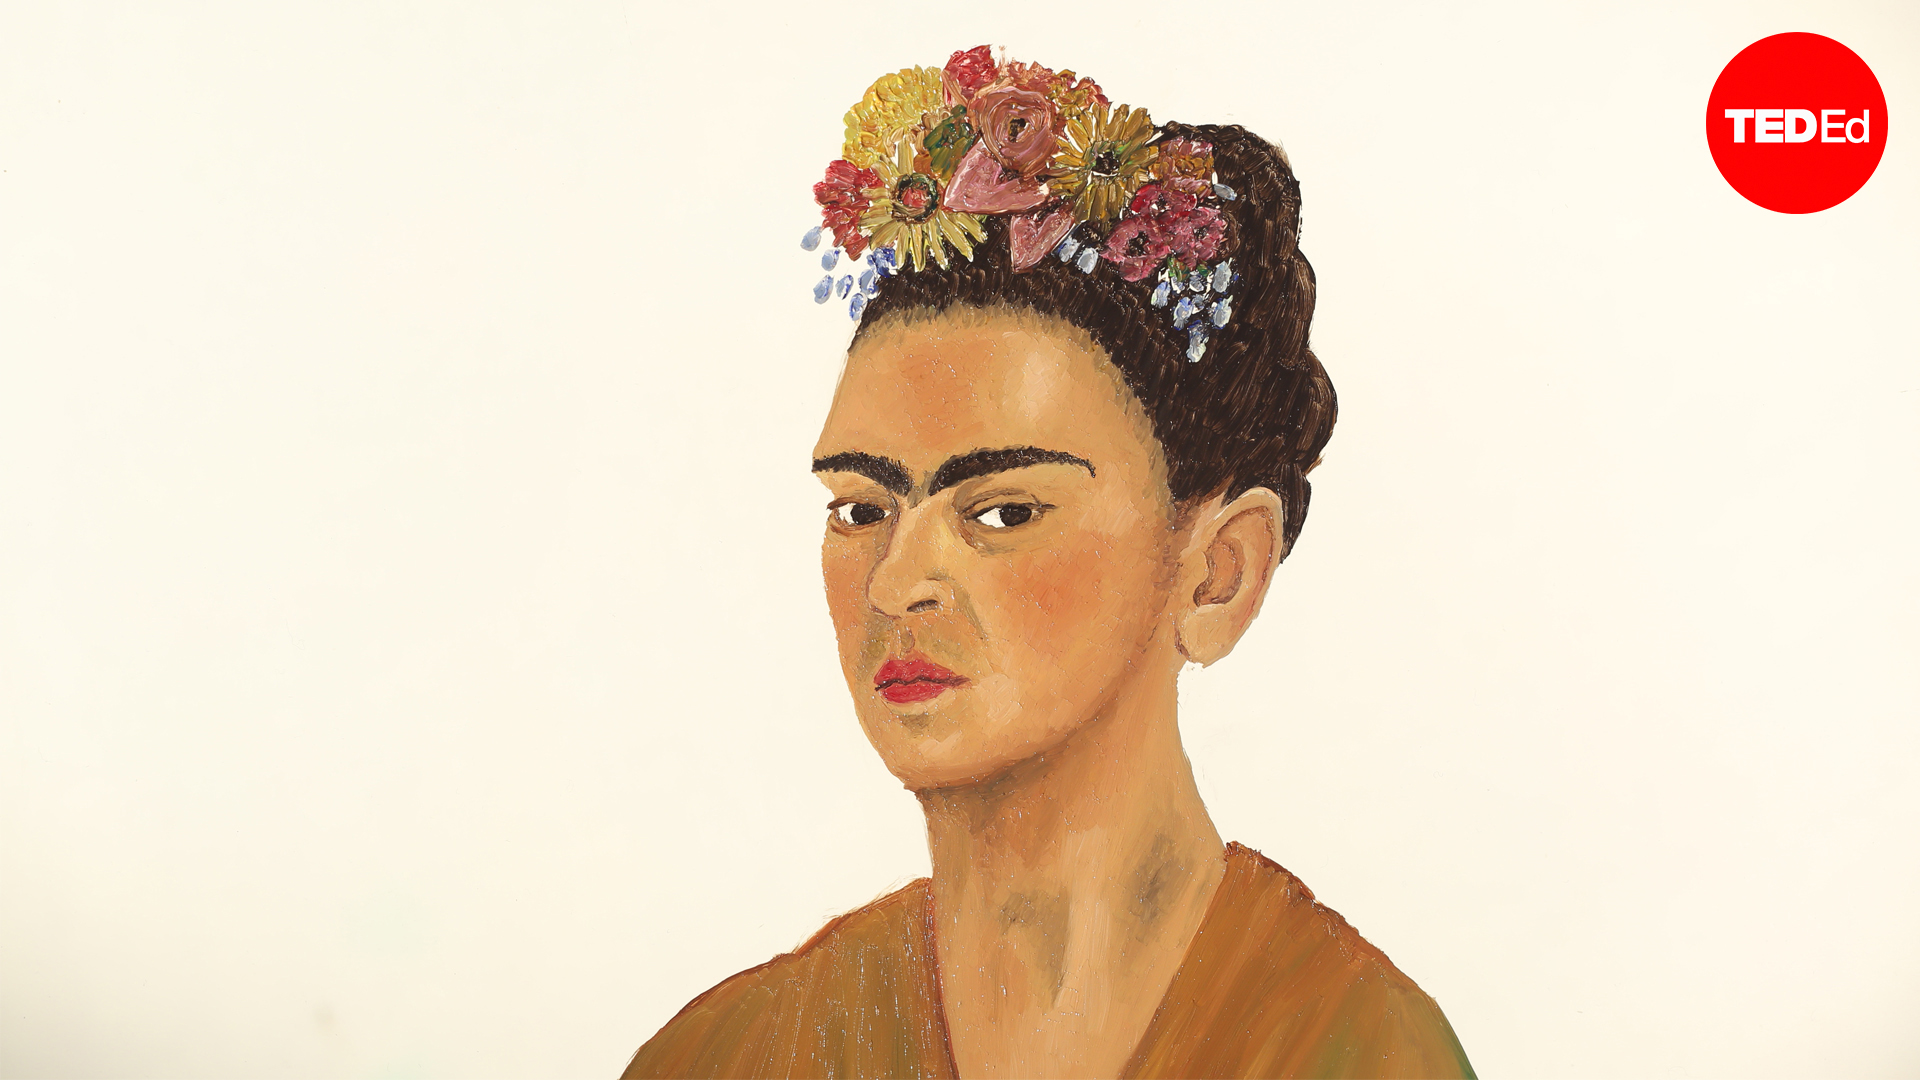 Frida Kahlo: The woman behind the legend